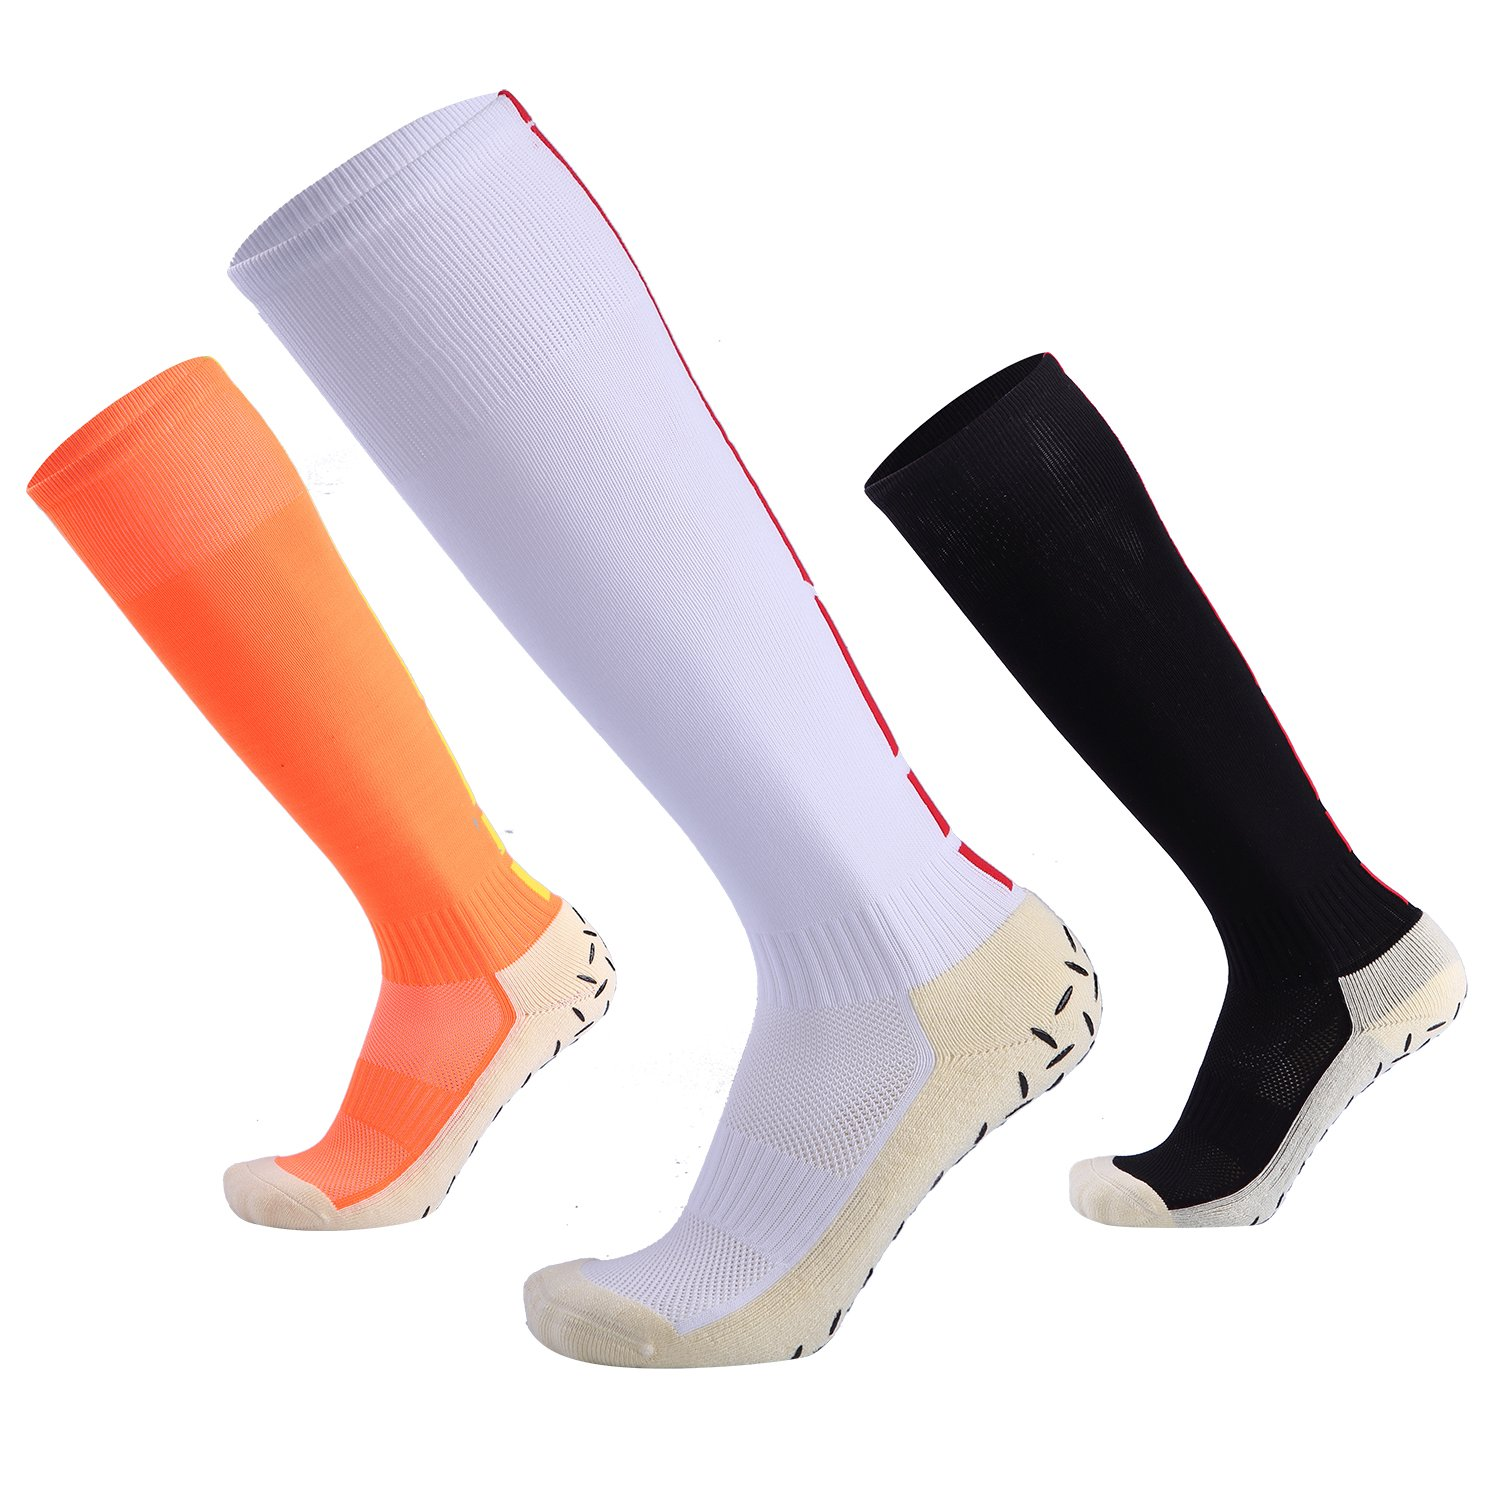 Men's Low Top Sports Socks Best Football Basketball Running Bicycle Badminton Tennis Hiking Training Travel (3 pairs)